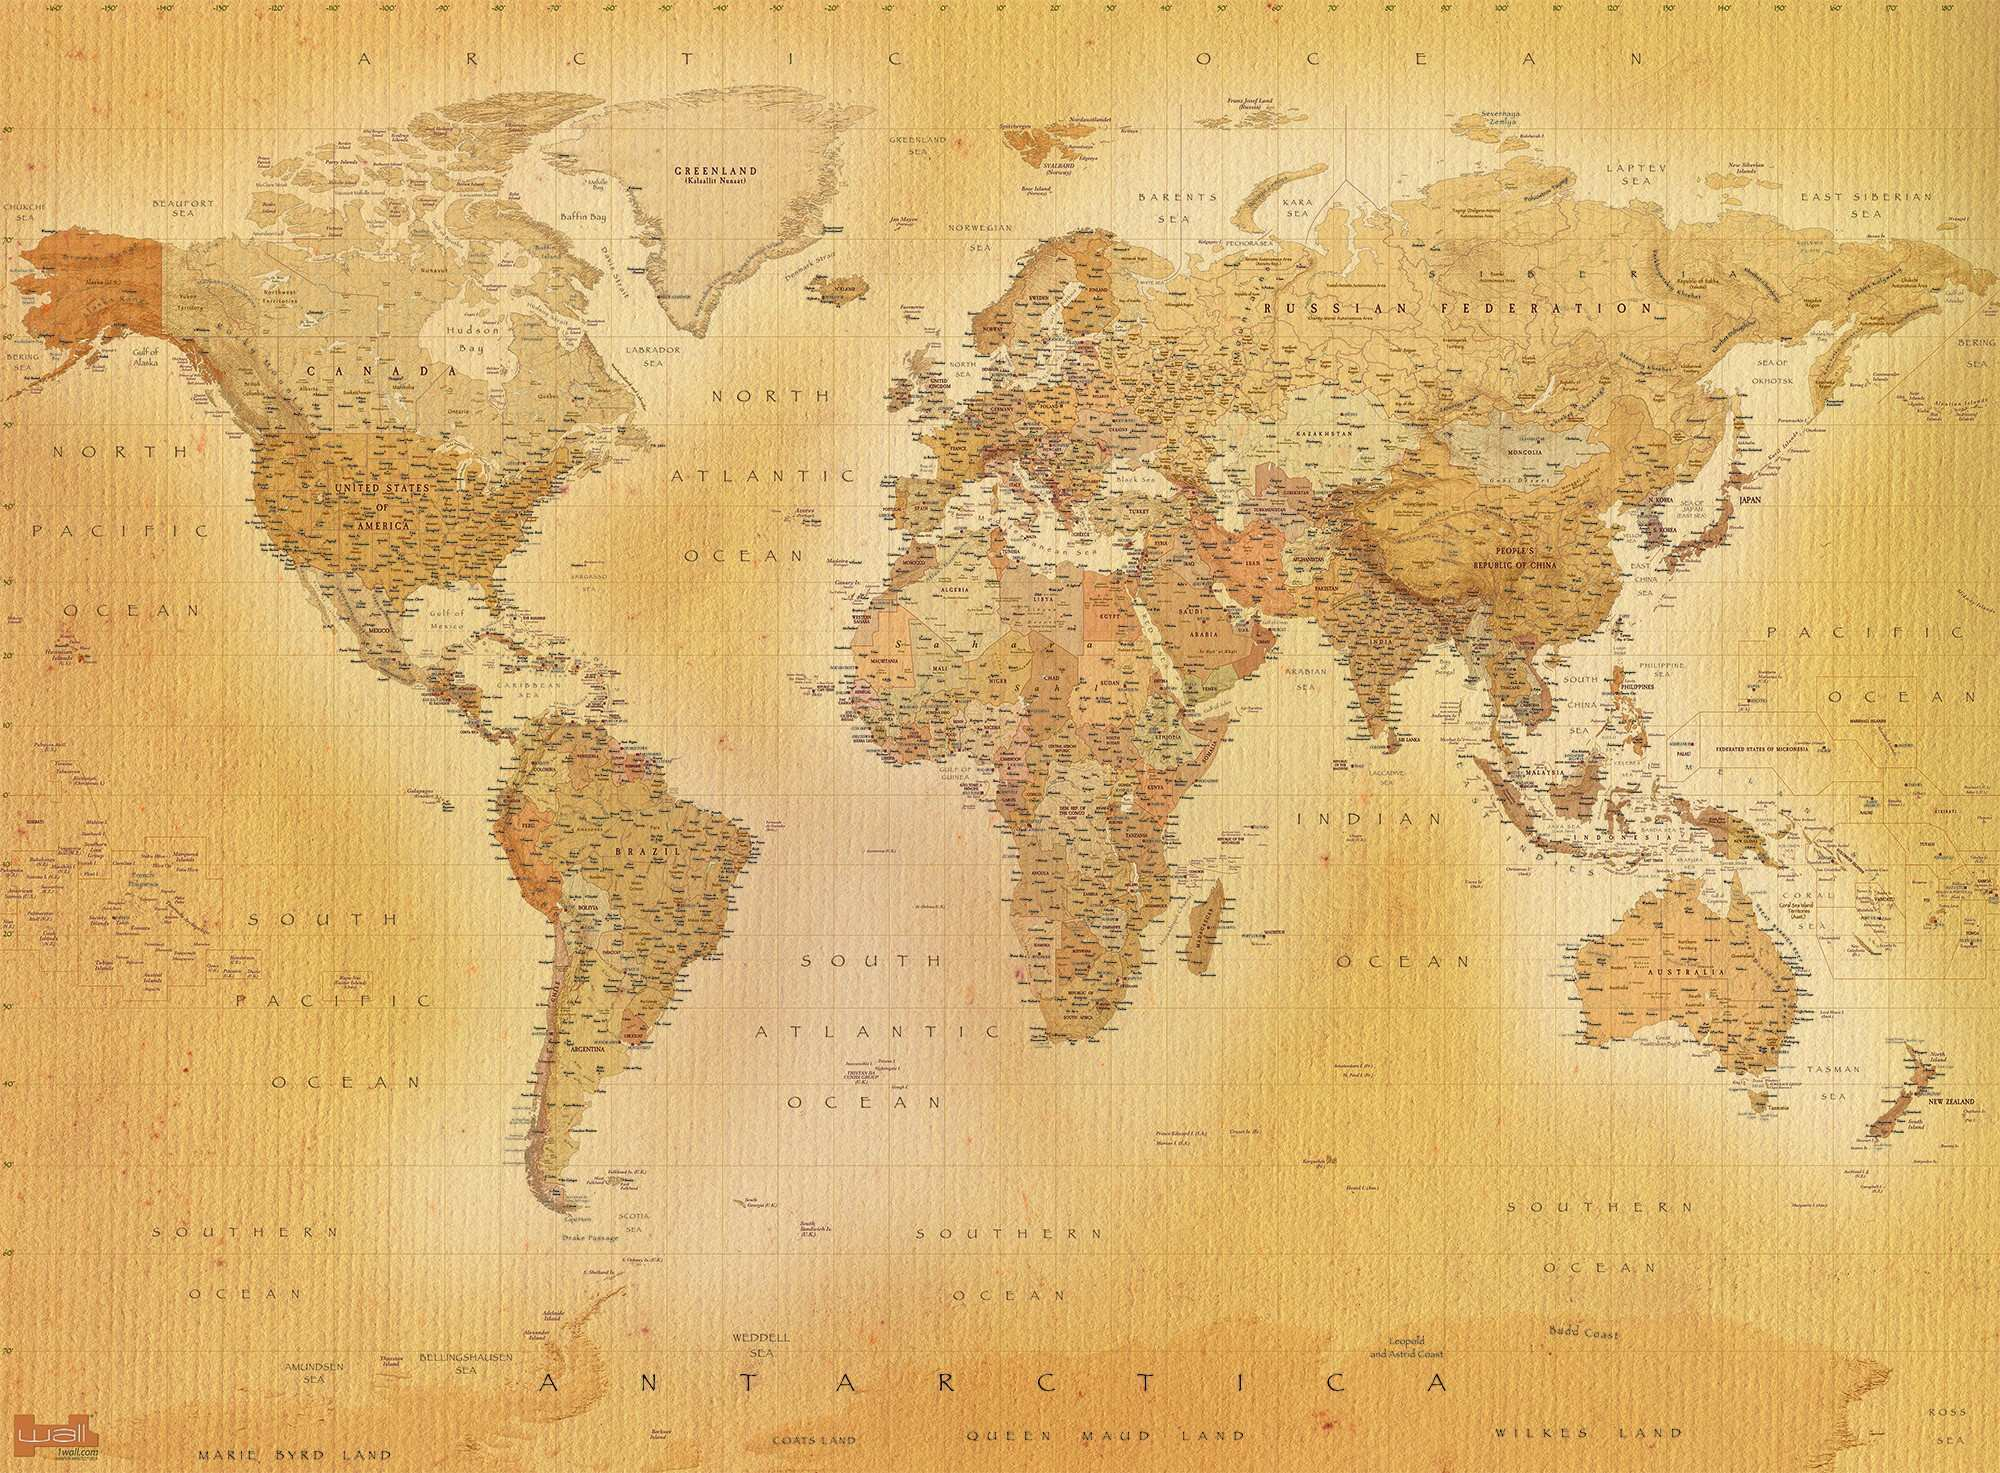 World Map Wall Print Luxury Old World Map Poster Vintage Old Maps ...